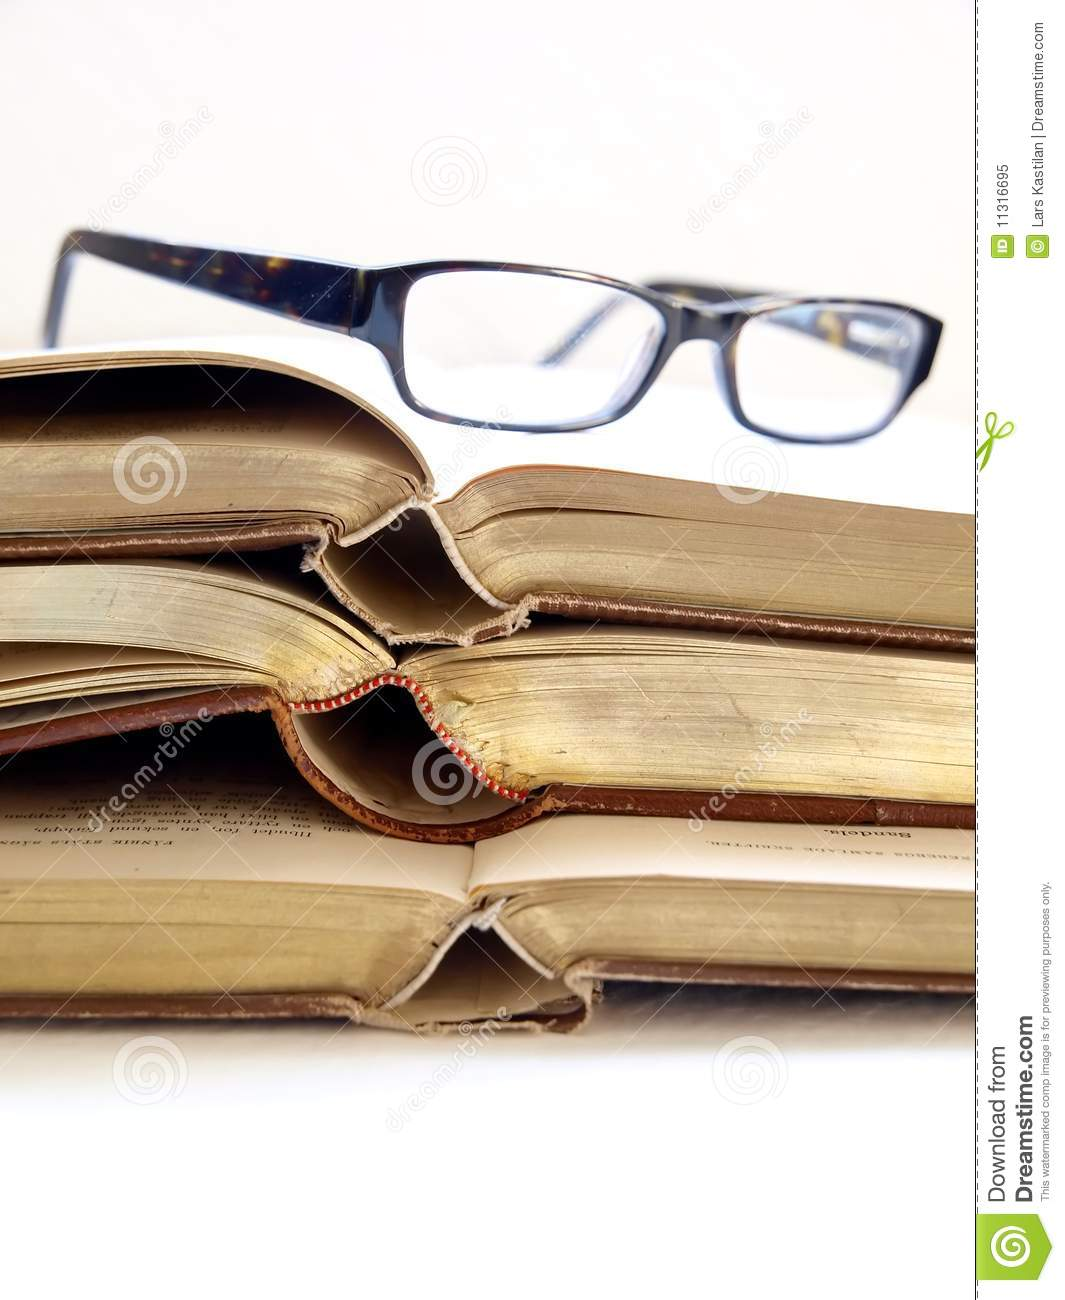 glasses on book - photo #37